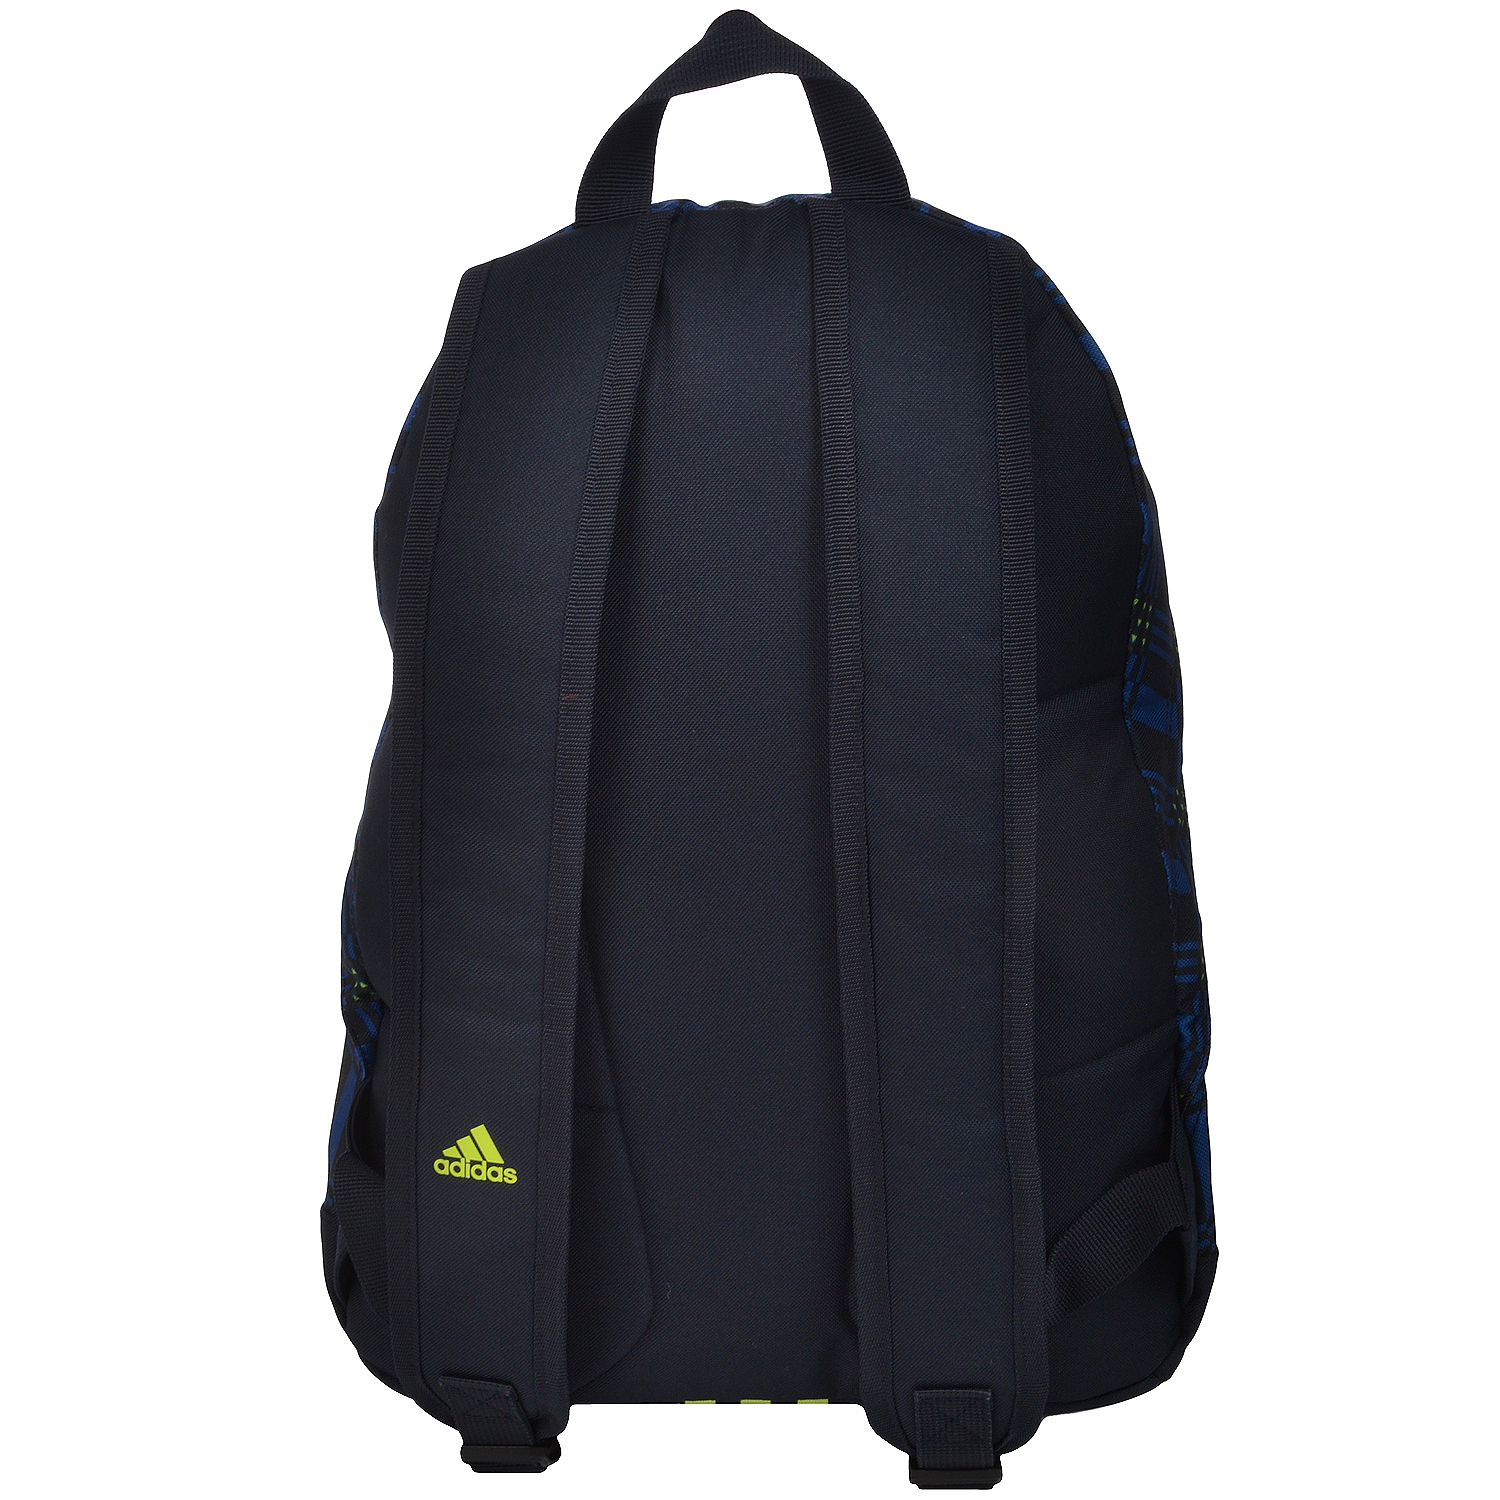 adidas performance classic school college backpack